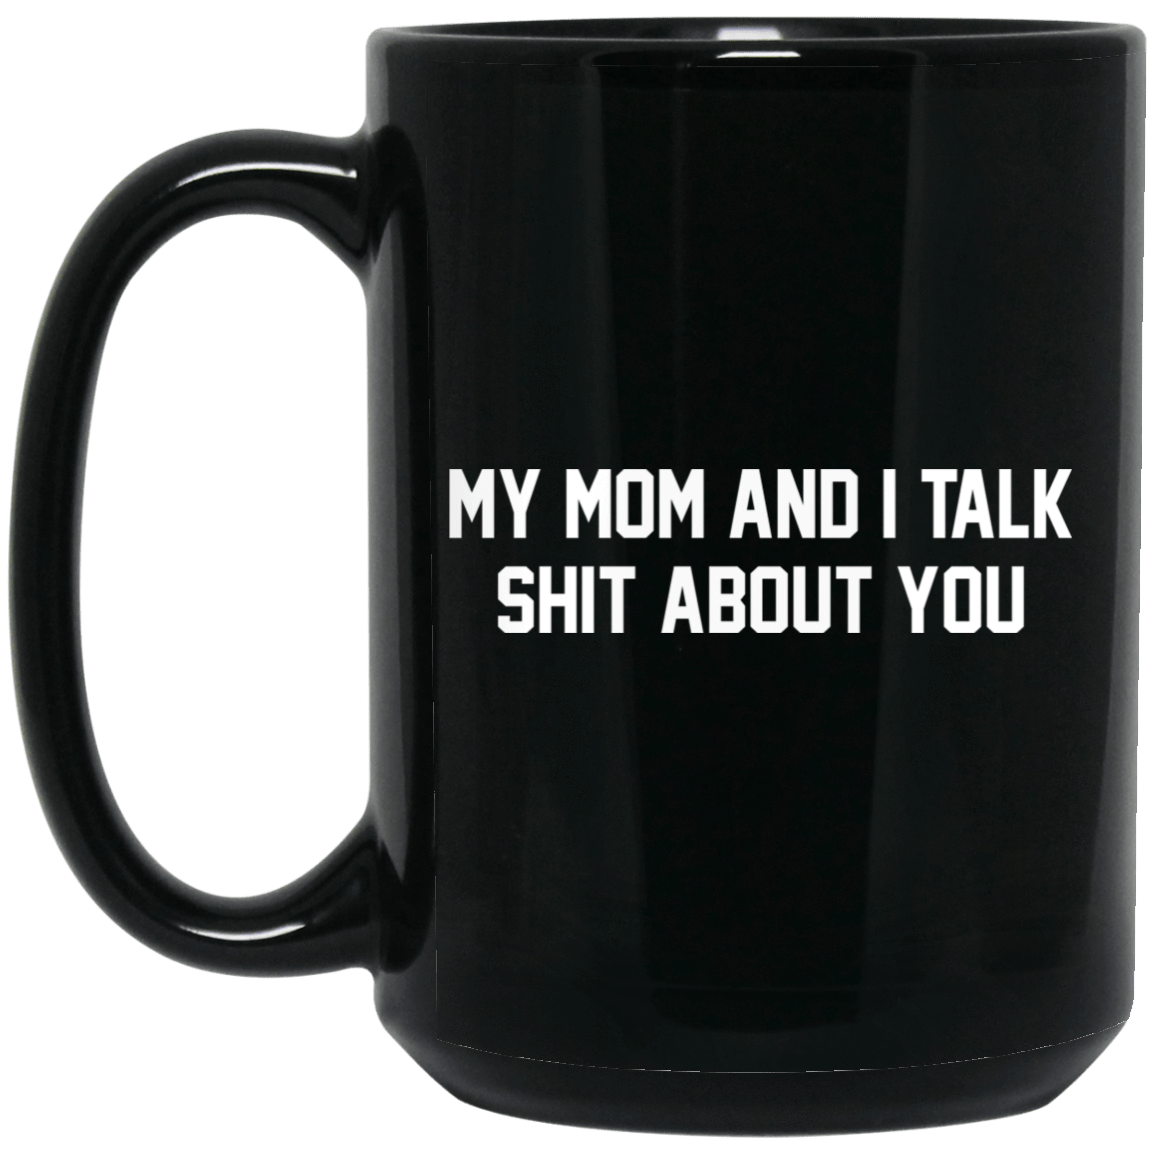 My Mom And I Talk Shit About You Mug 1066-10182-72519627-49311 - Tee Ript